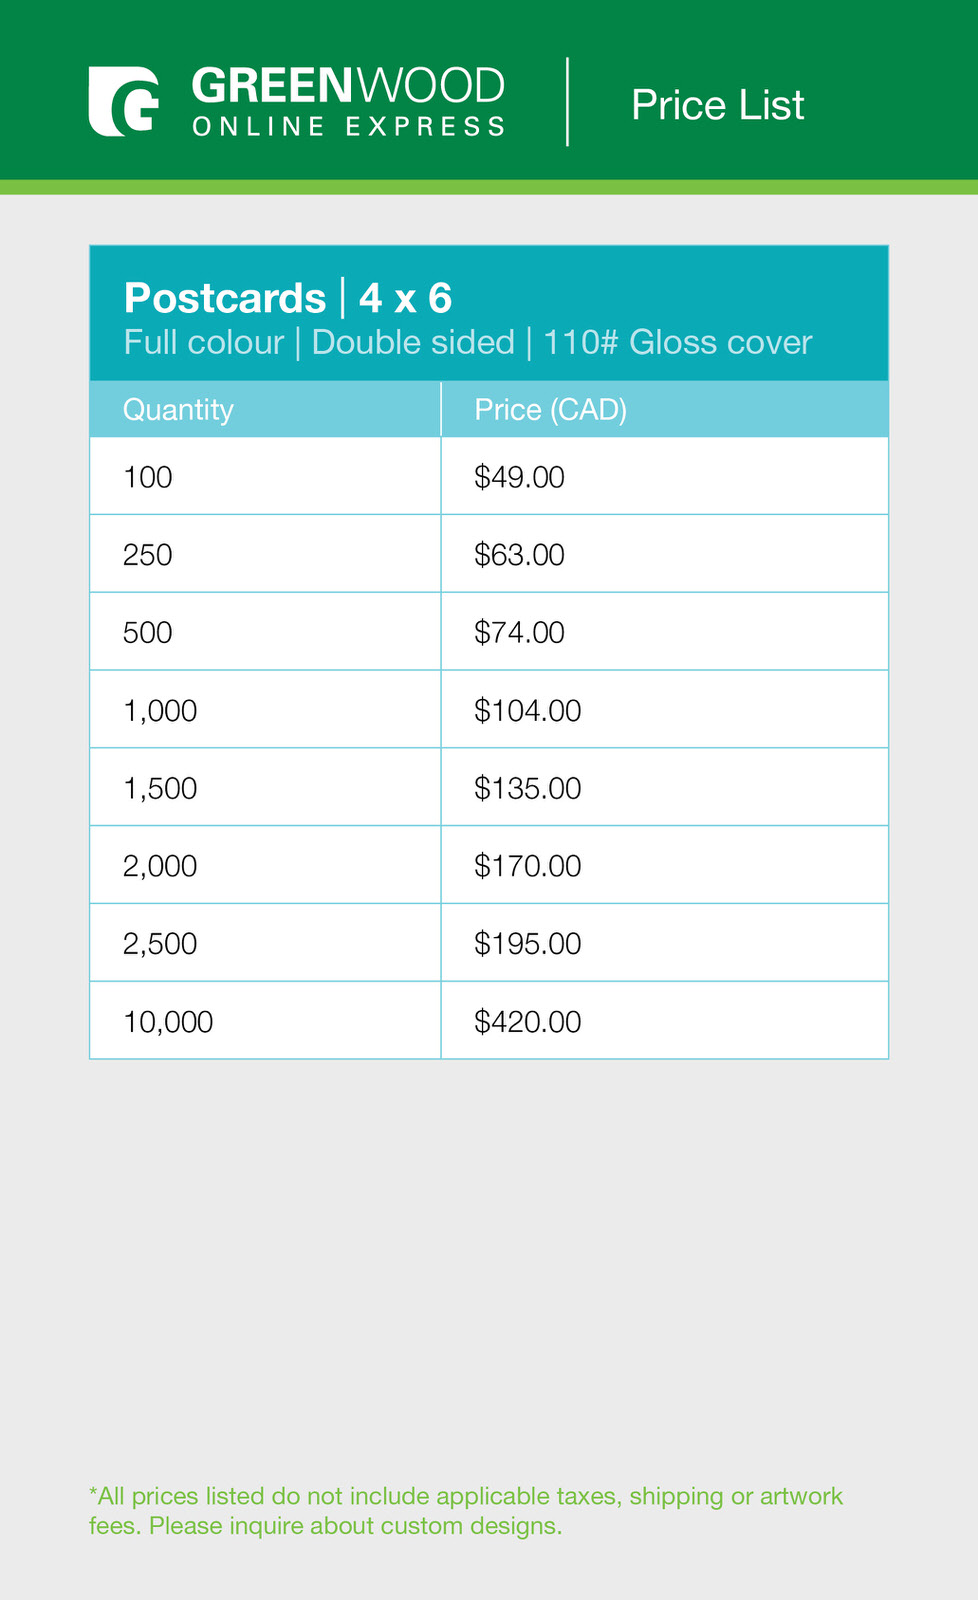 Greenwood postcards 4x6 double sided price list.jpg